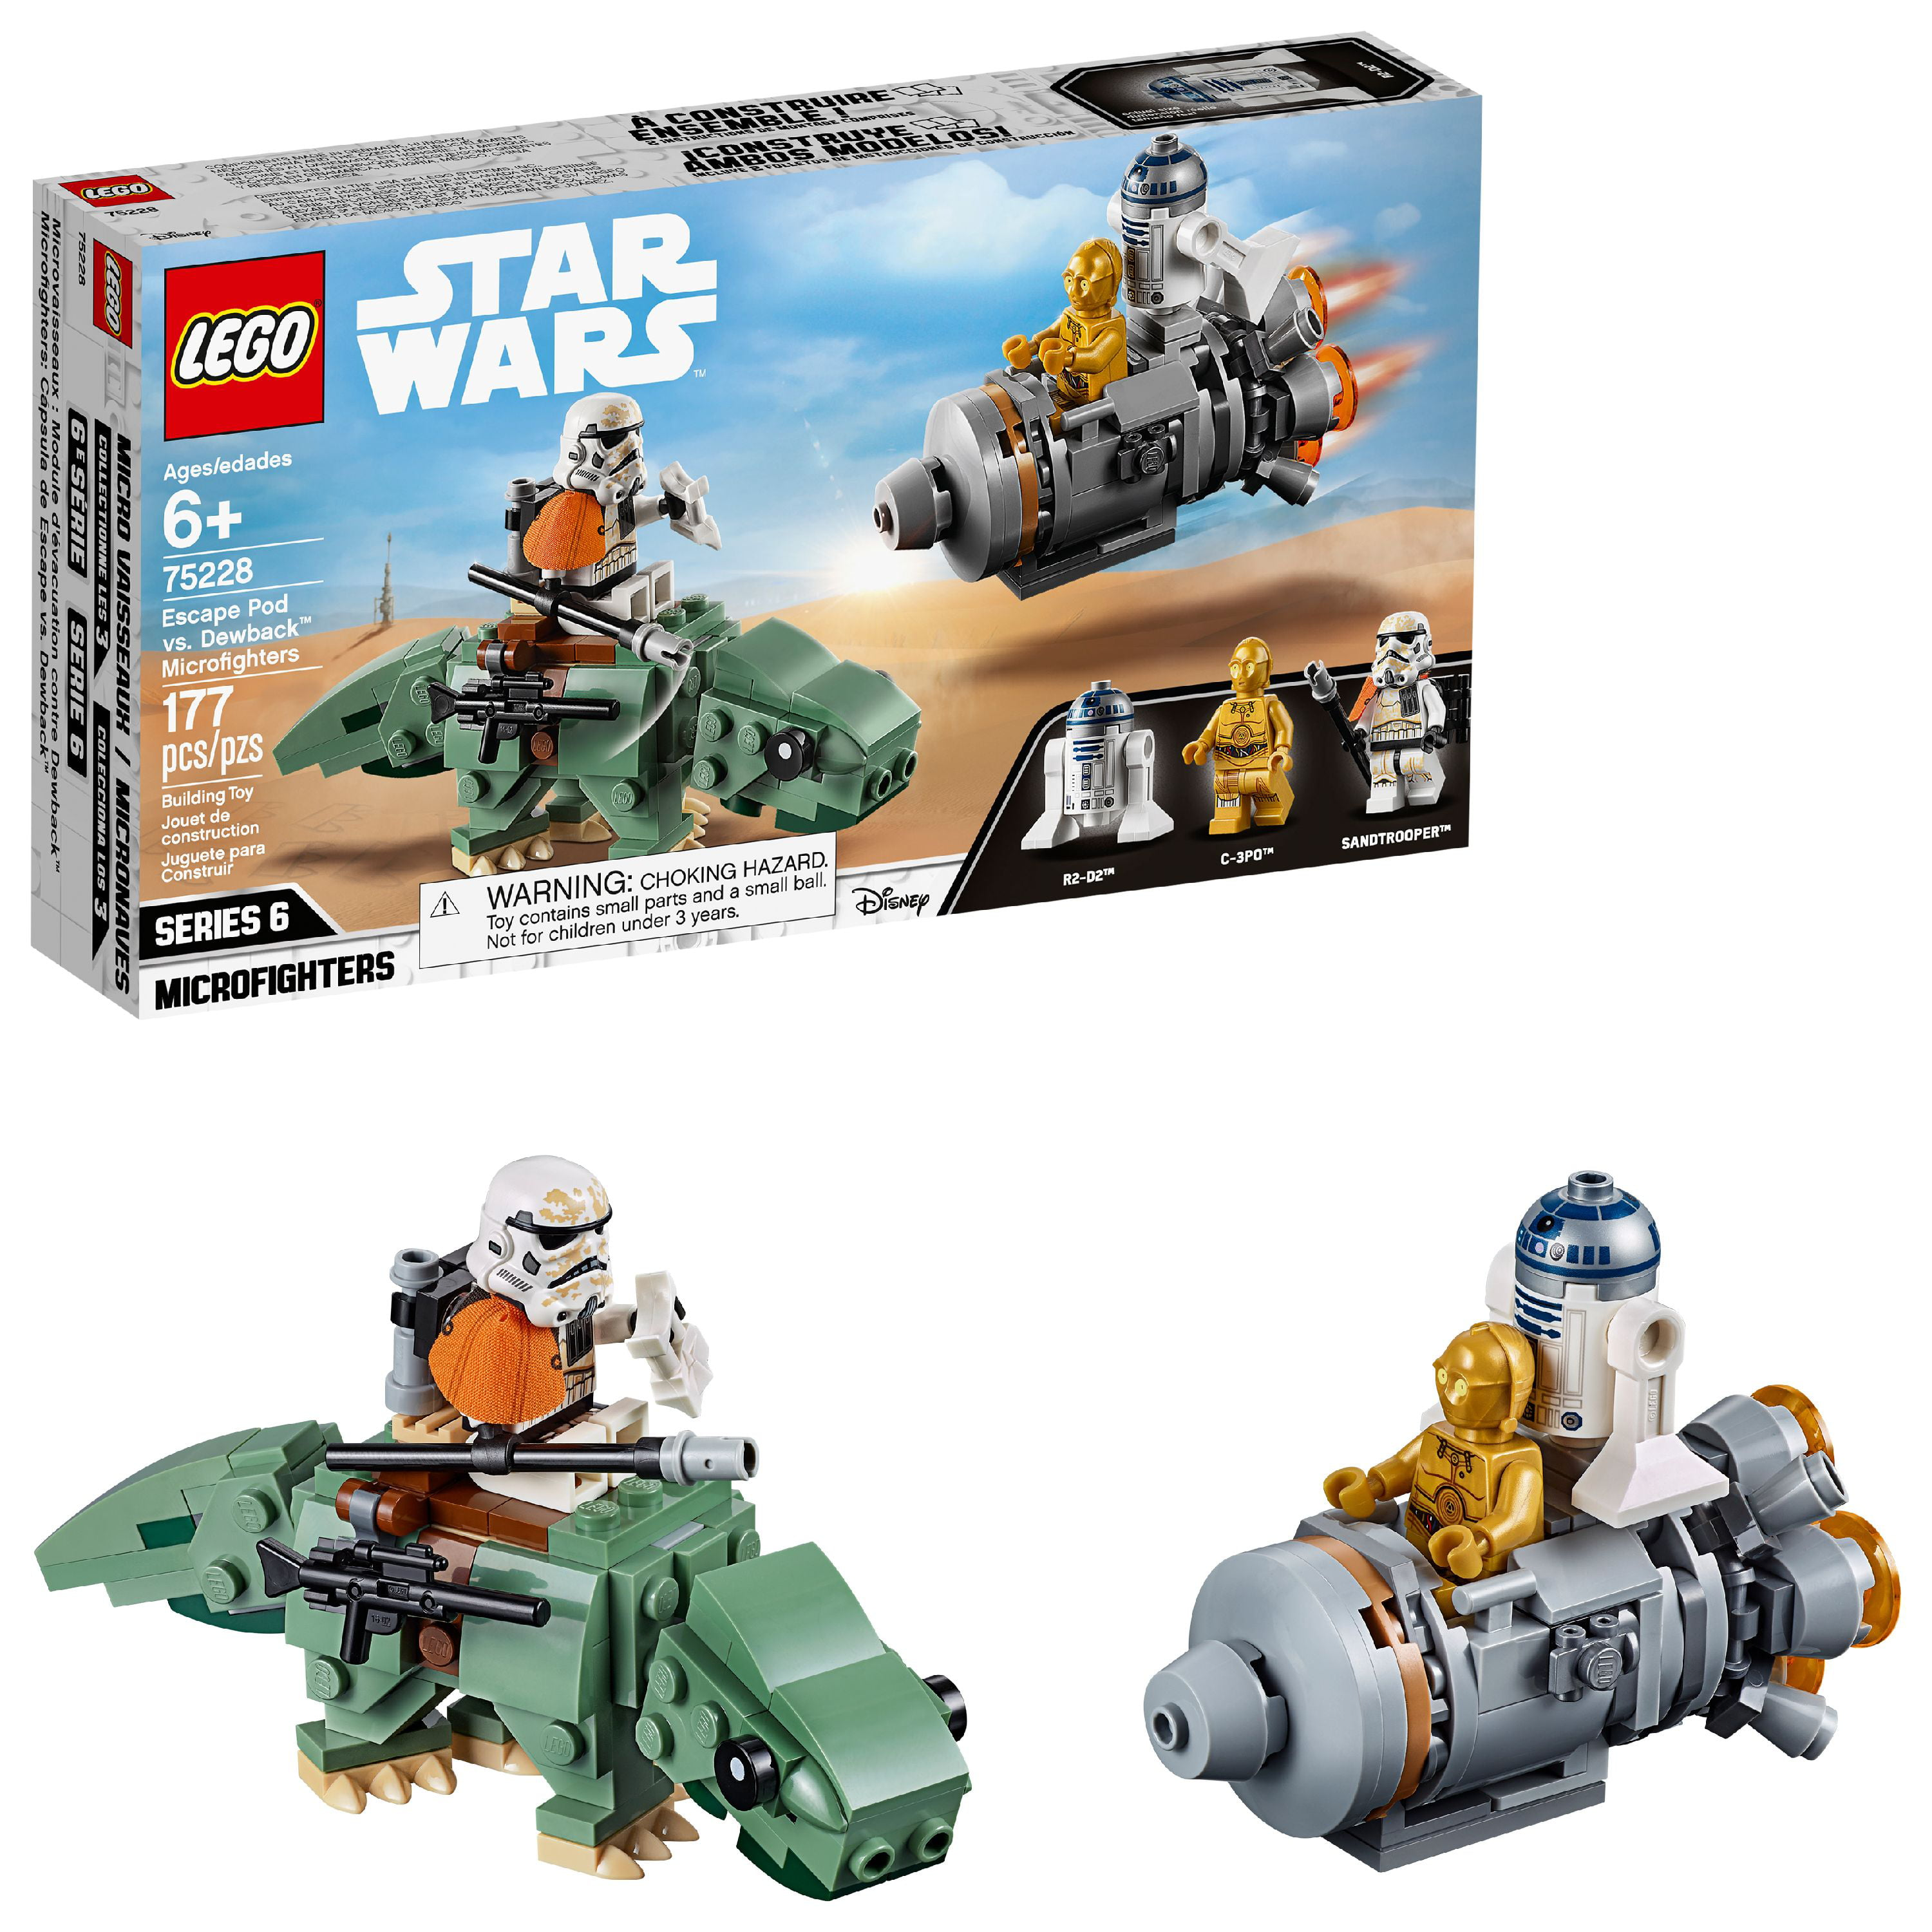 LEGO Star Wars Escape Pod vs. Dewback Microfighters 75228 Collectible Droid Building Set